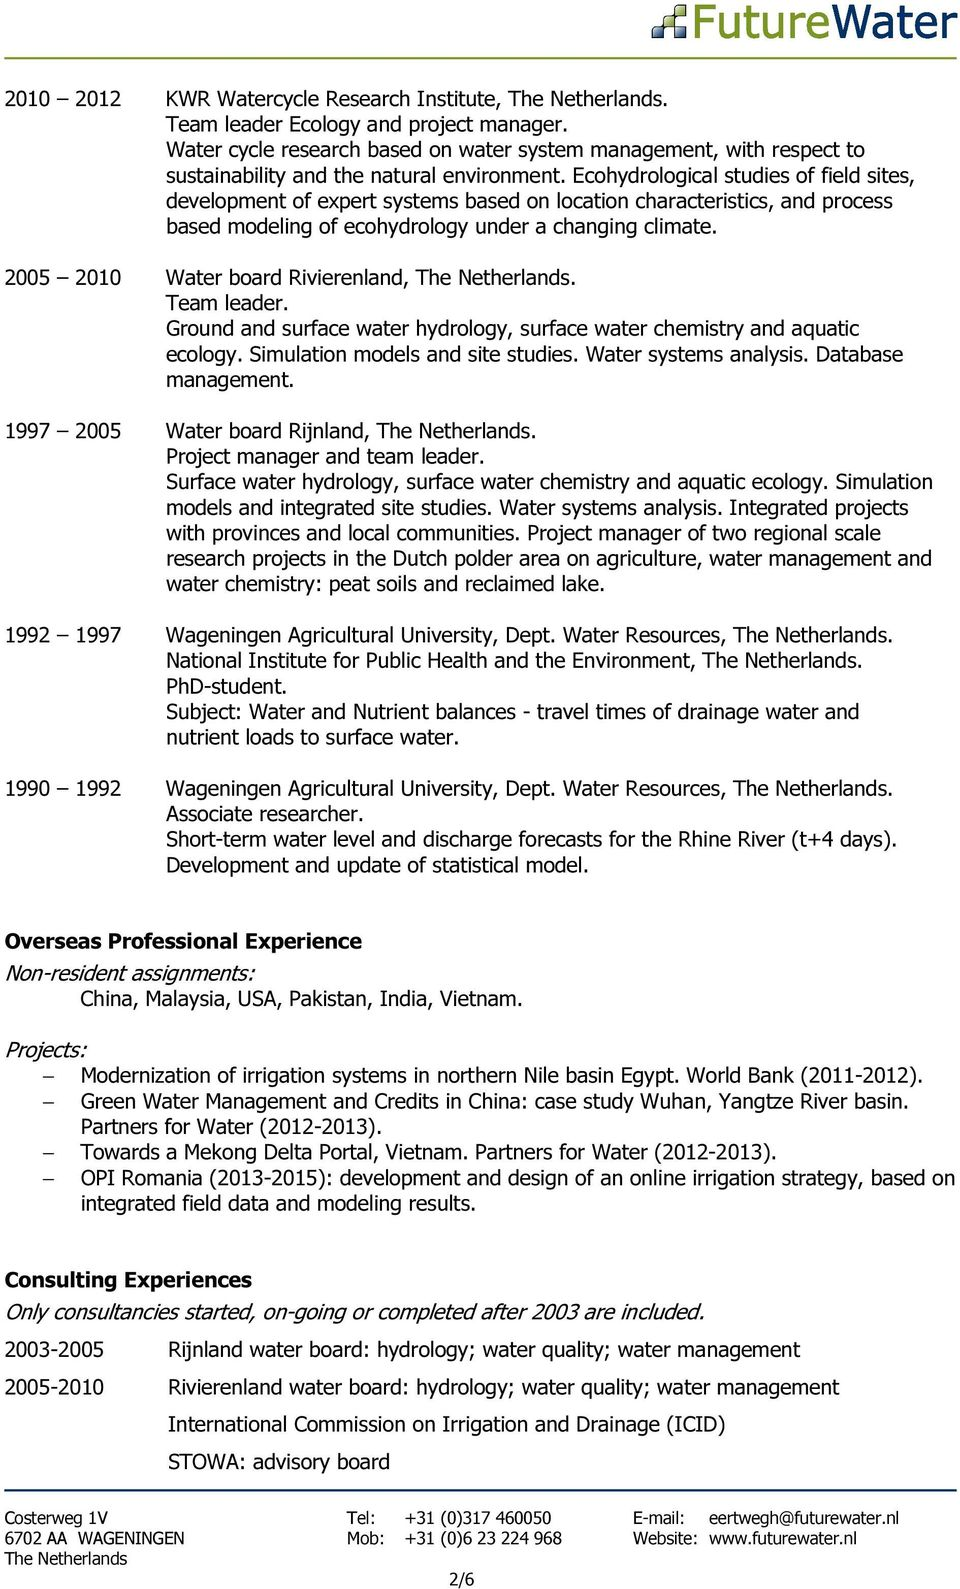 Sample cover letter for production supervisor position image 4